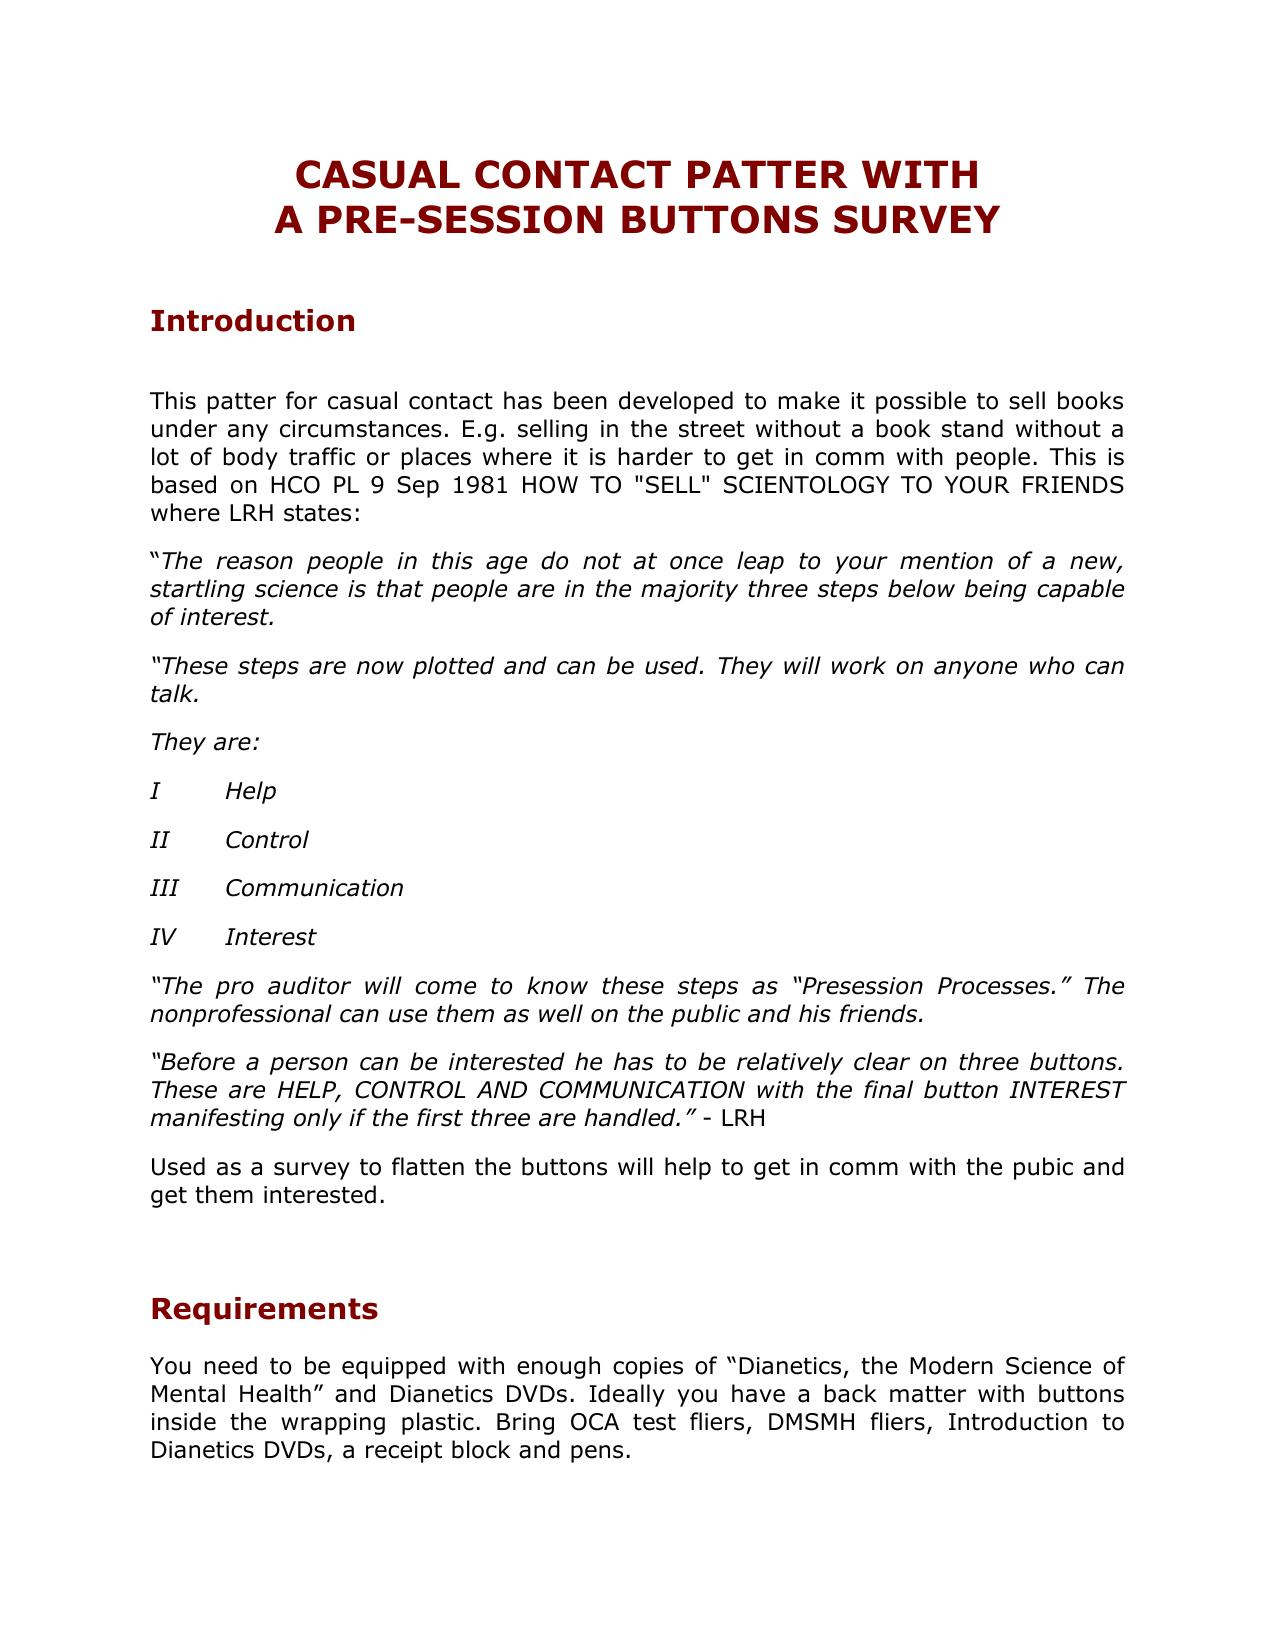 Pre-Session Survey Patter001